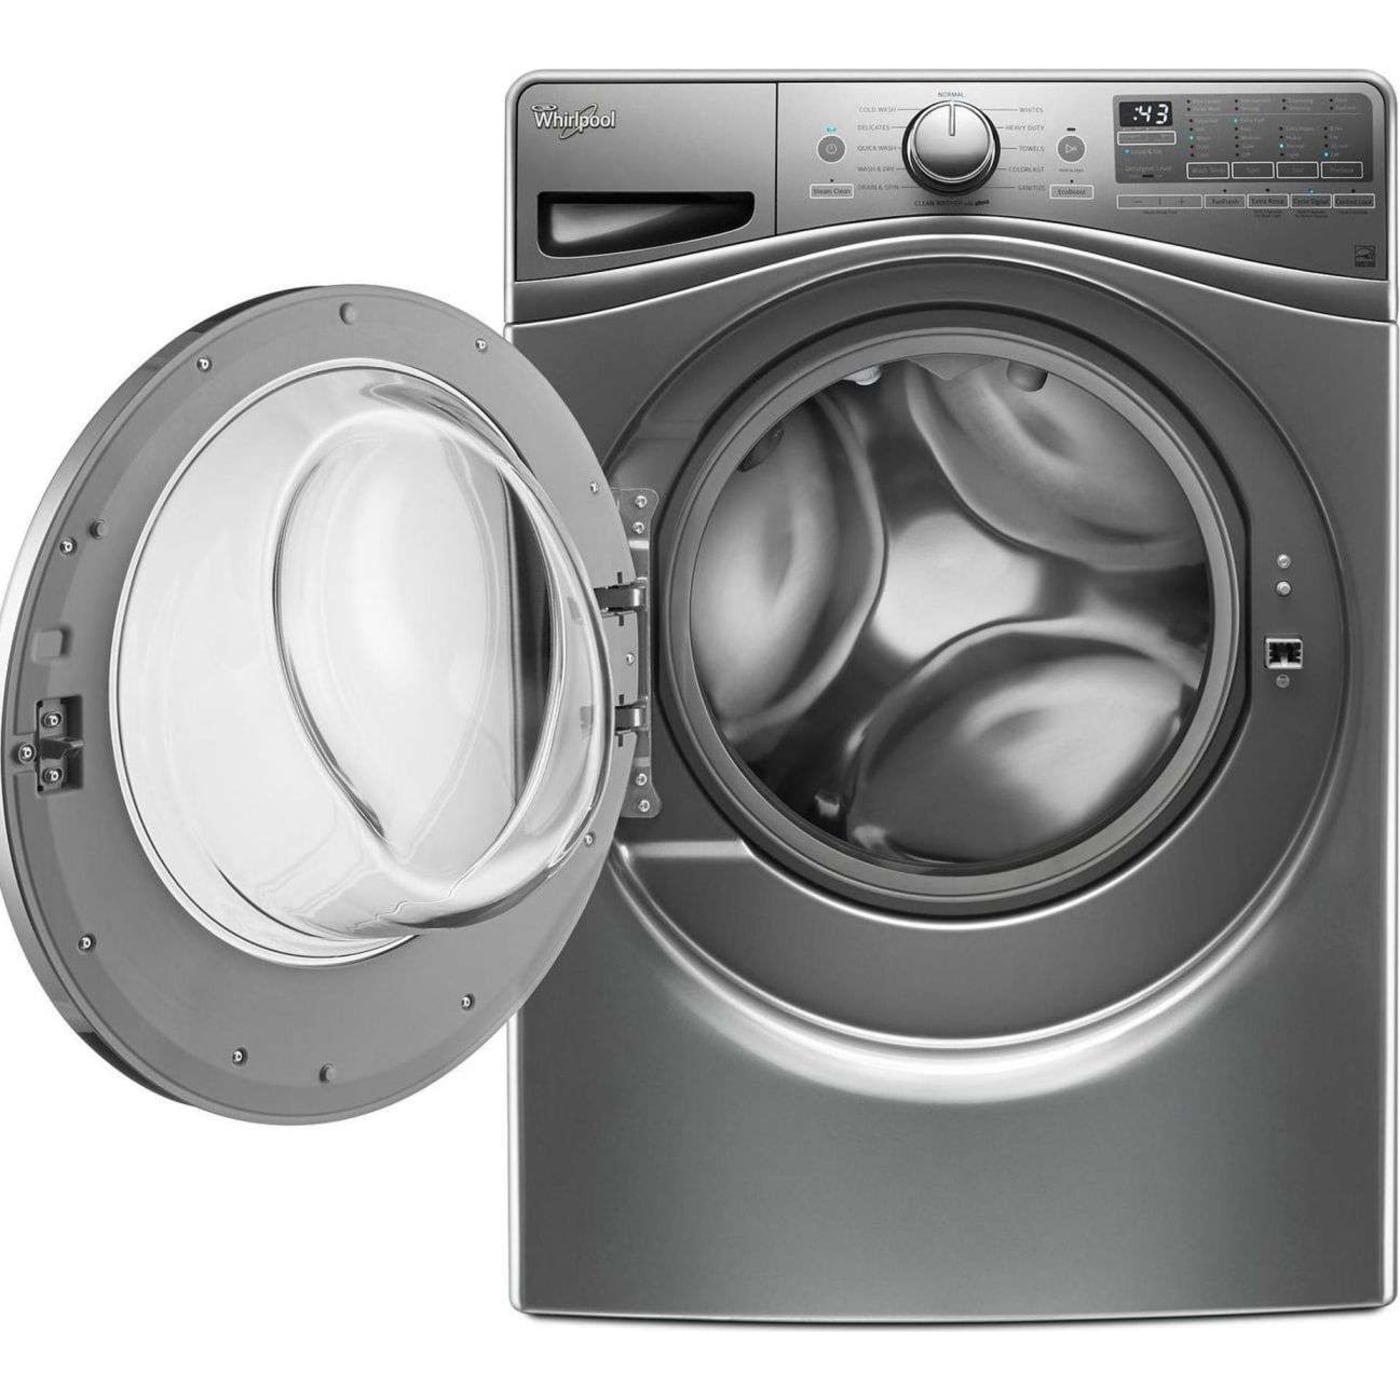 whirlpool washer how to use